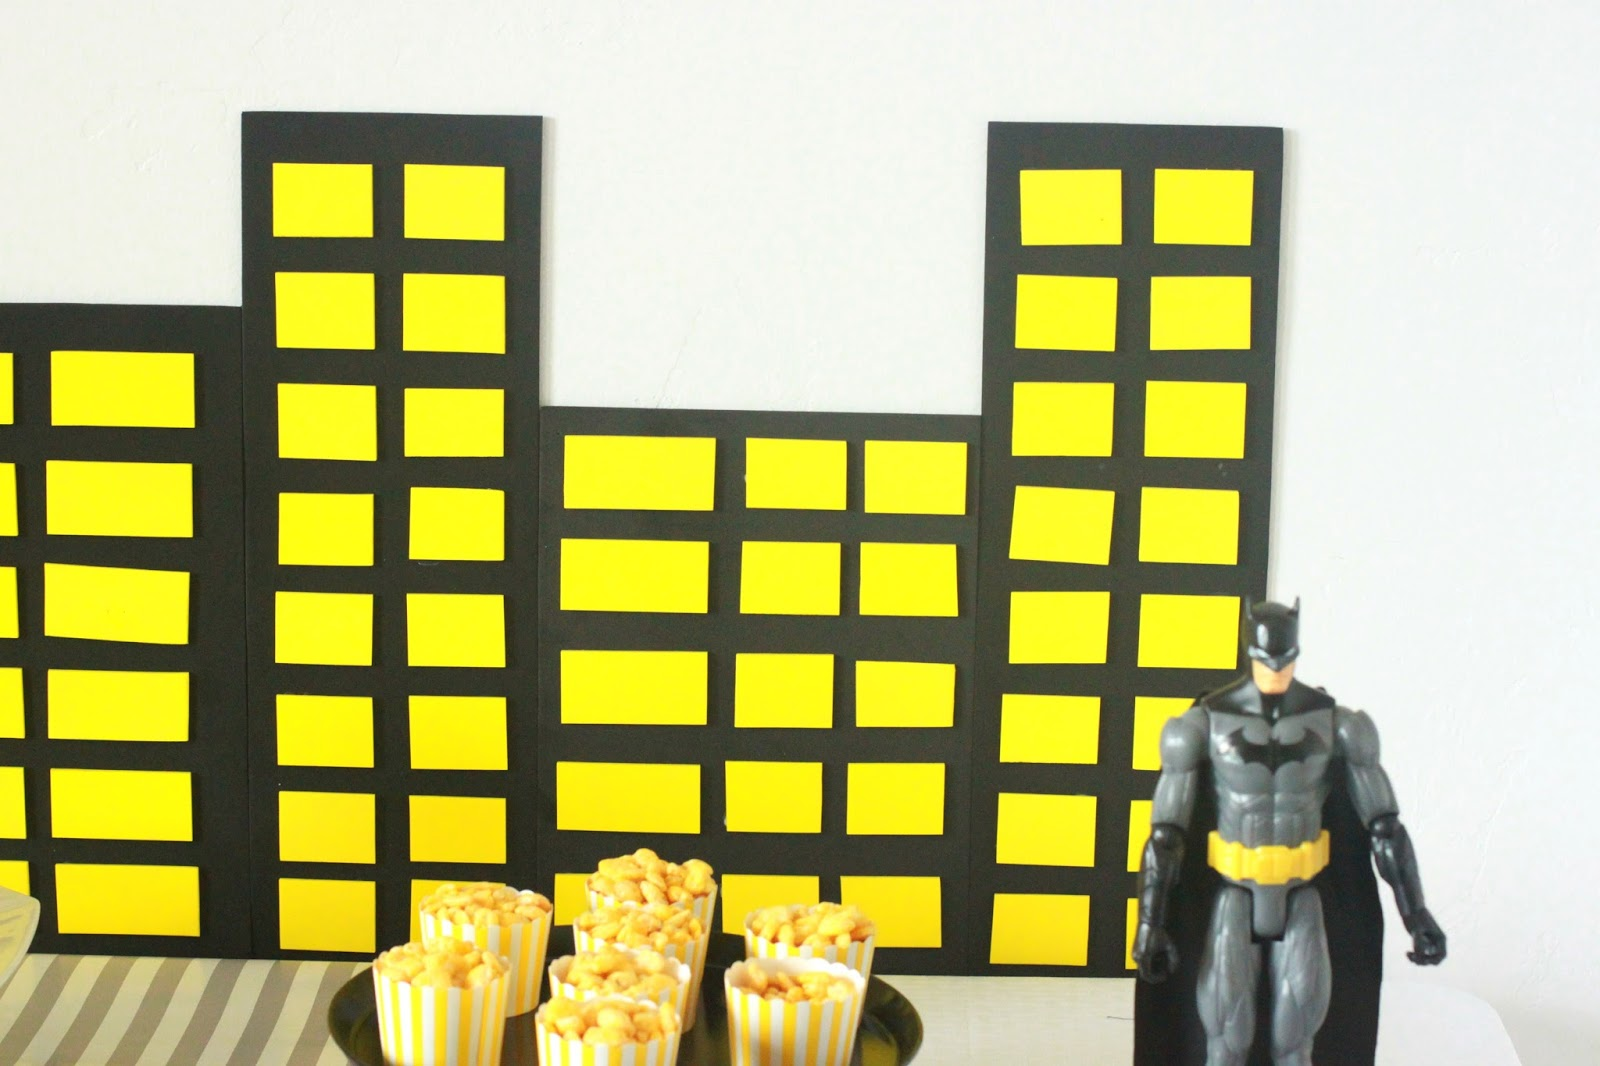 Gmail batman theme - One Of My Party Decorating Tricks Is To Pick A Color Theme That Coordinates With The Party Theme And Then To Go Crazy With It I Incorporate The Colors In